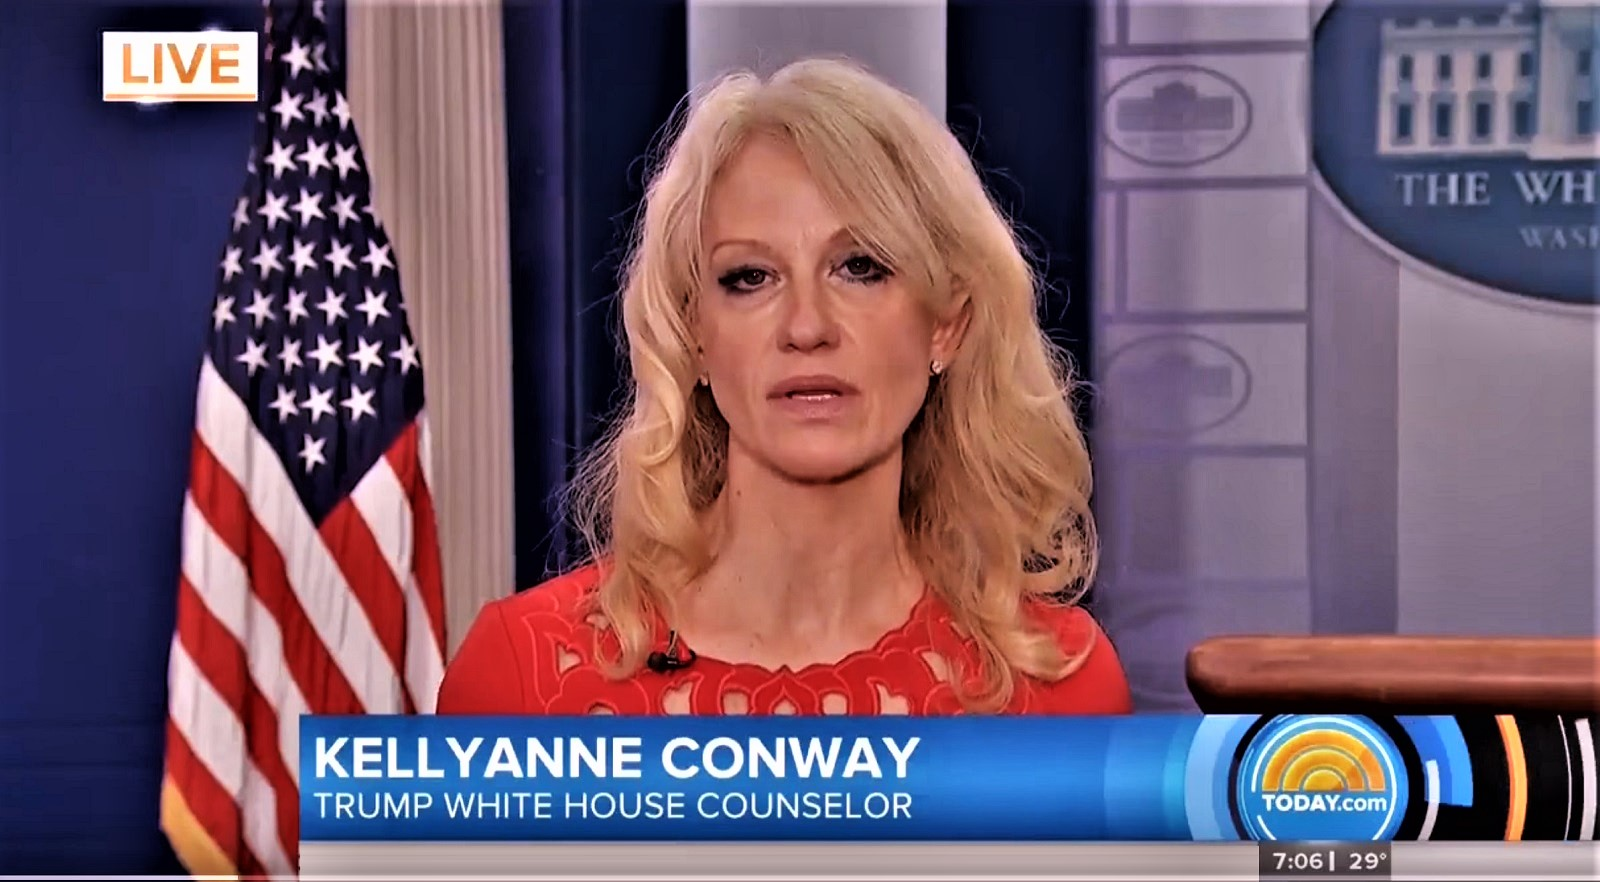 Conway Claims White House Video Was 'Sped Up' Not 'Altered': 'They Do It All The Time In Sports'